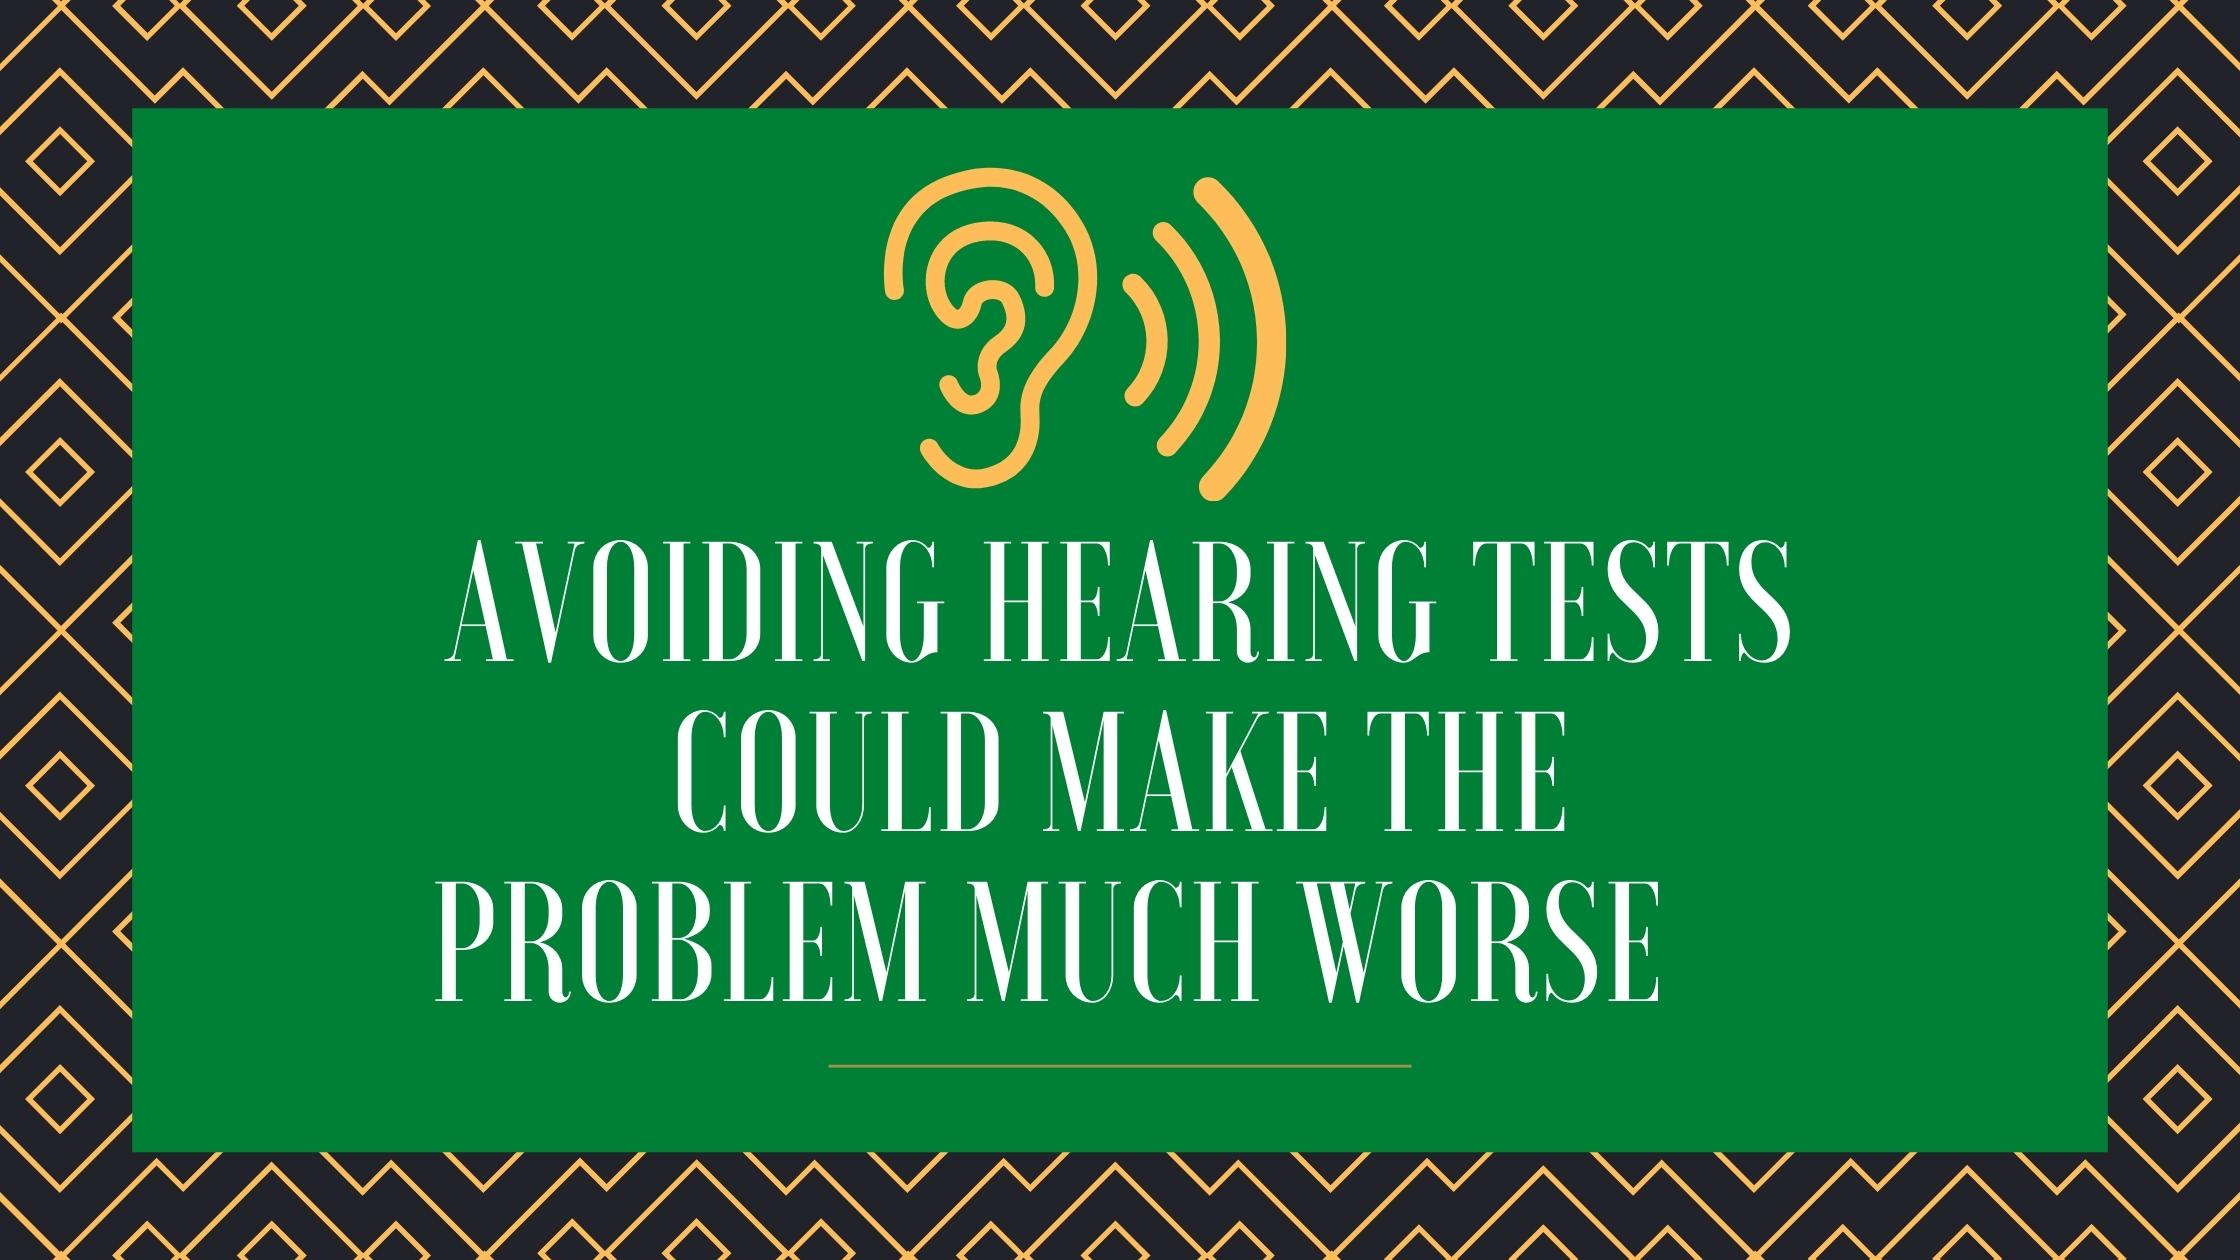 Avoiding Hearing Tests Could Make the Problem Much Worse(1)